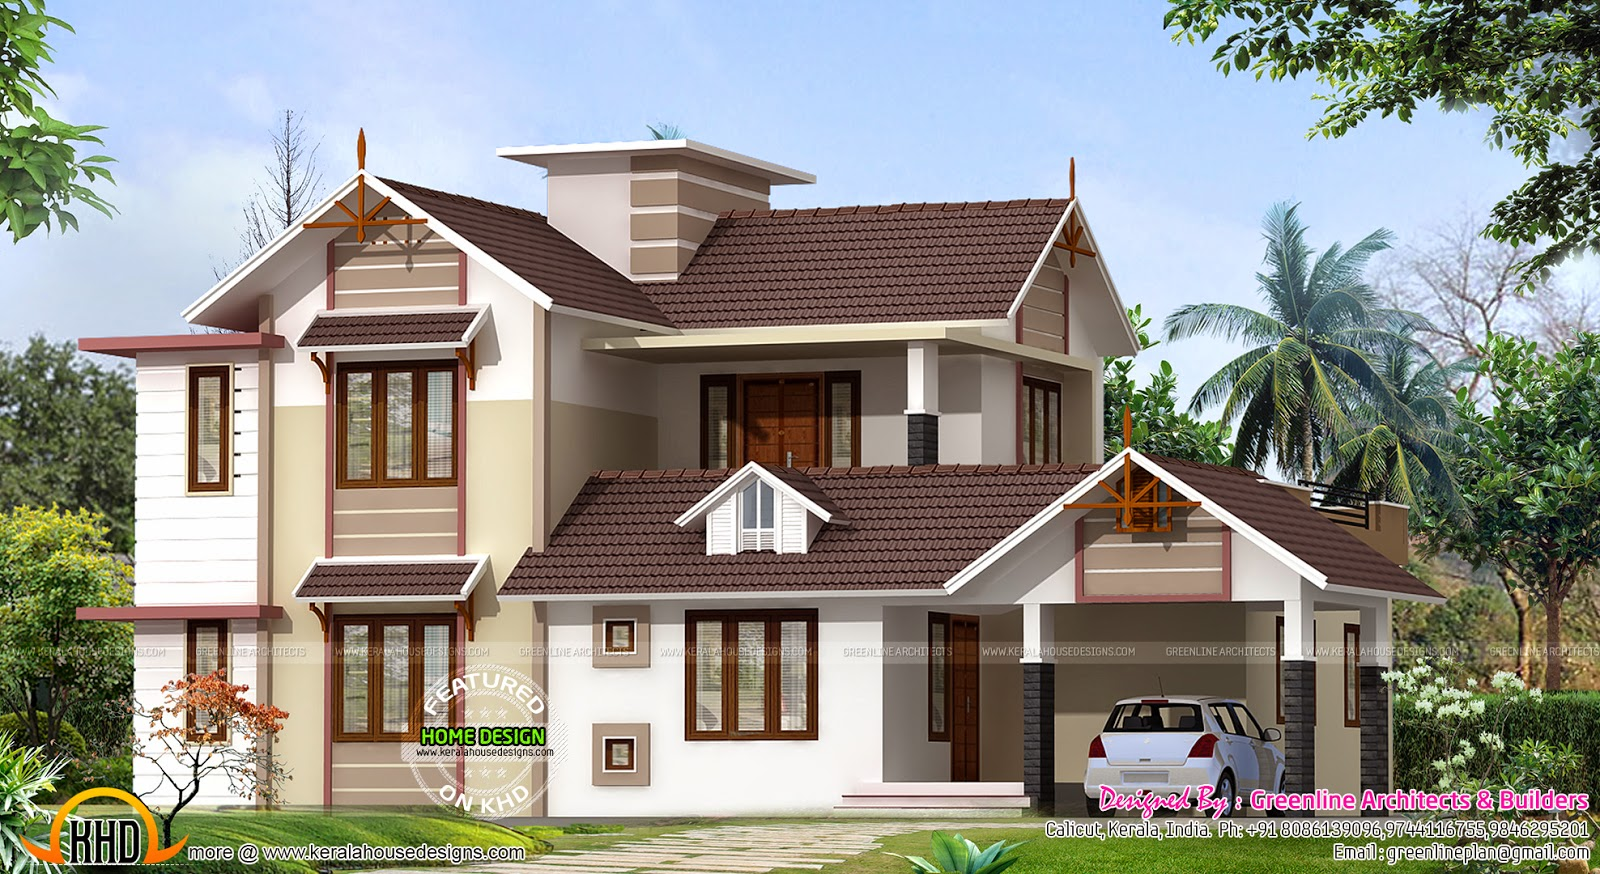 2400 sq ft new house design kerala home design and floor plans New house design